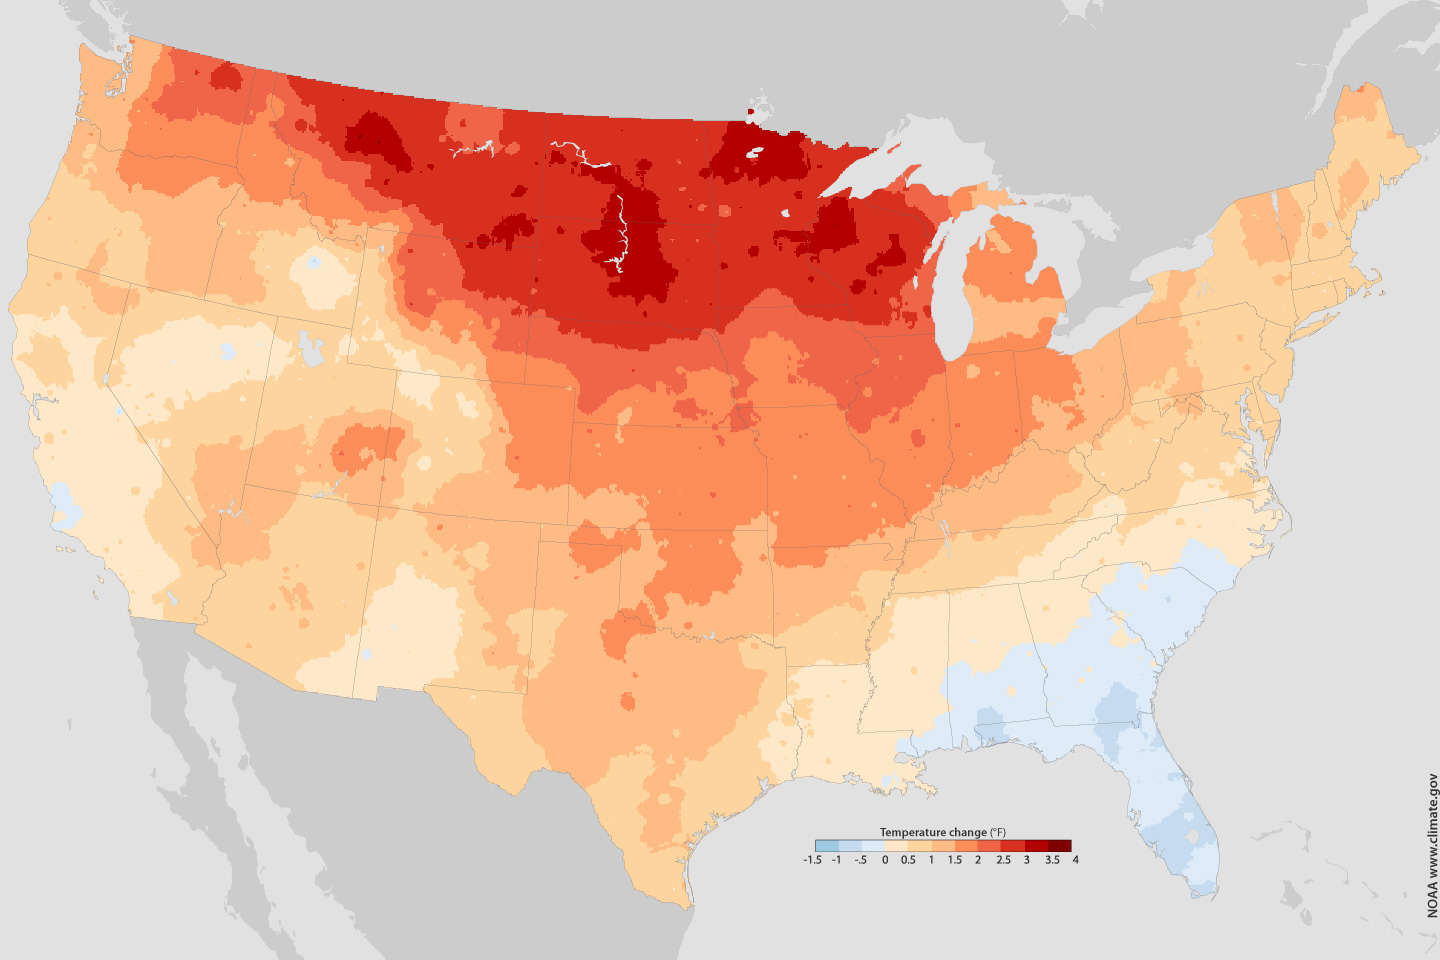 US Climate The New Normal Image Of The Day - Januaray temperatures us map